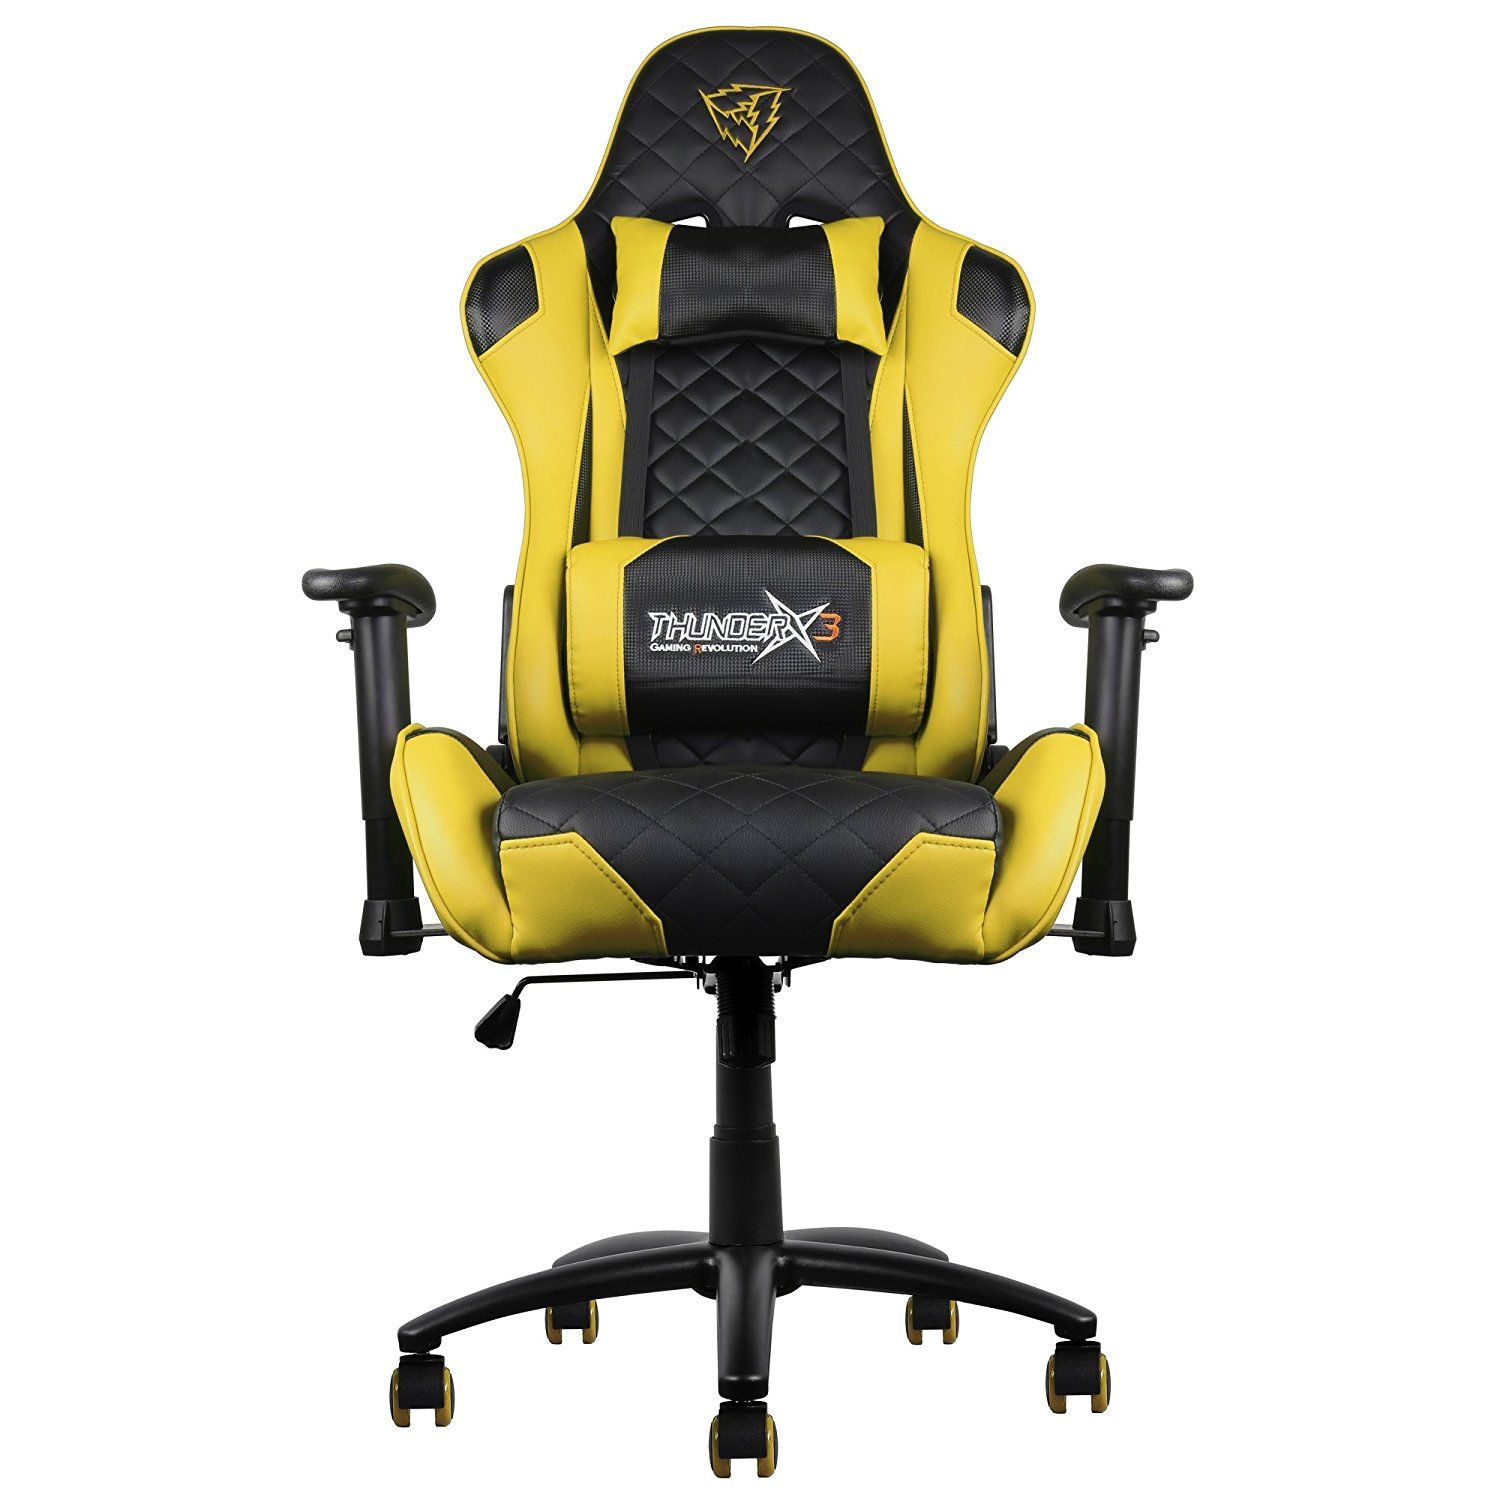 Pro Gamer Thunderx3 Tgc12bgGaming Silla GamerSillas Y7fgb6yv